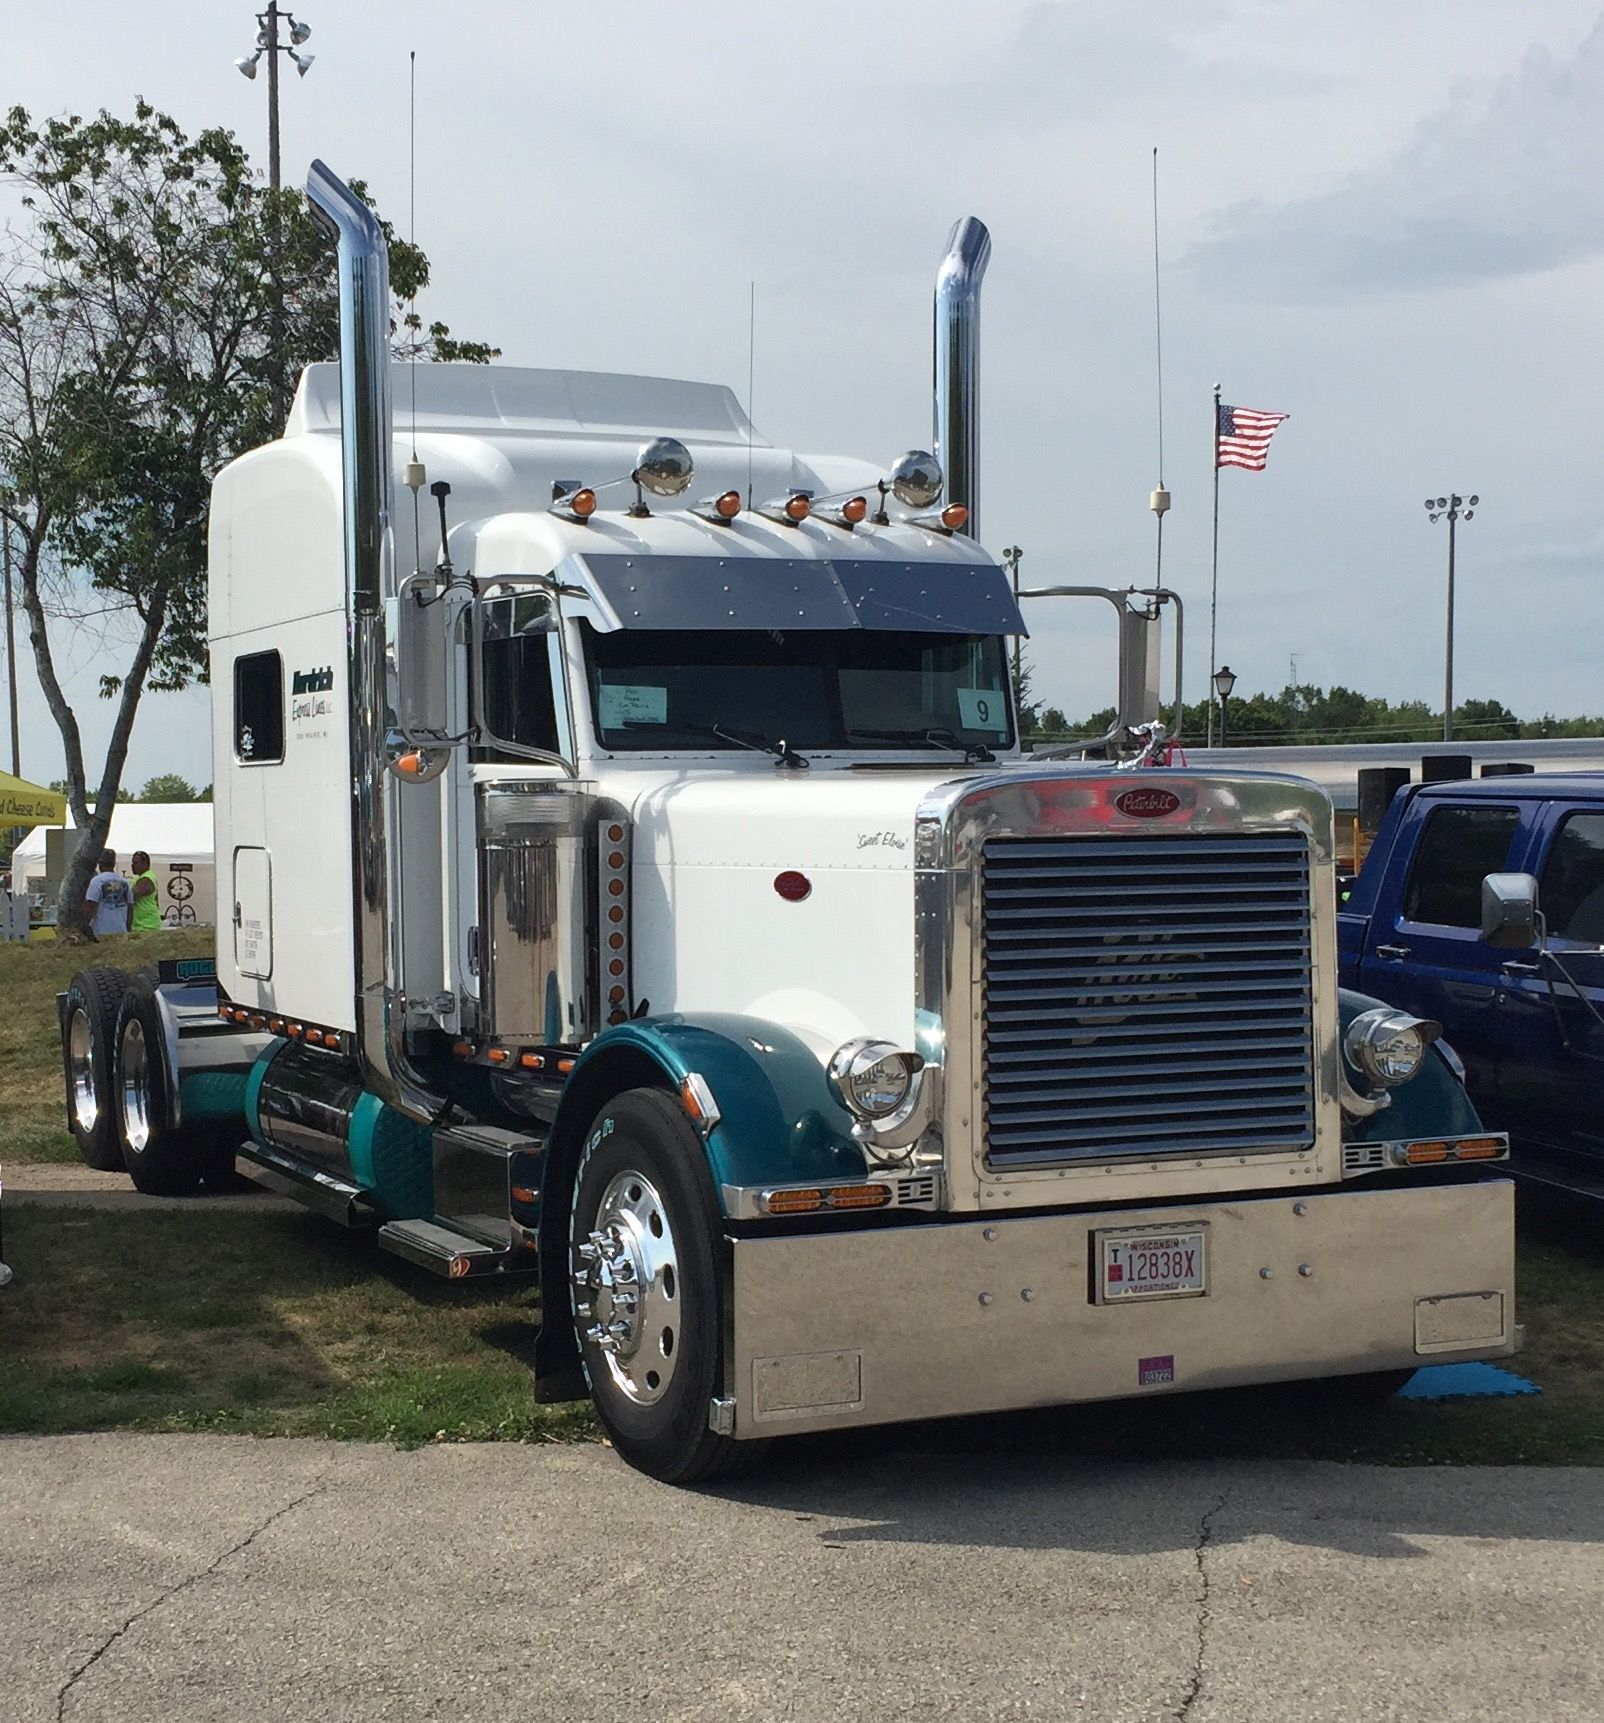 Pin By Hogebuilt On Waupun Truck Show 2015 With Images